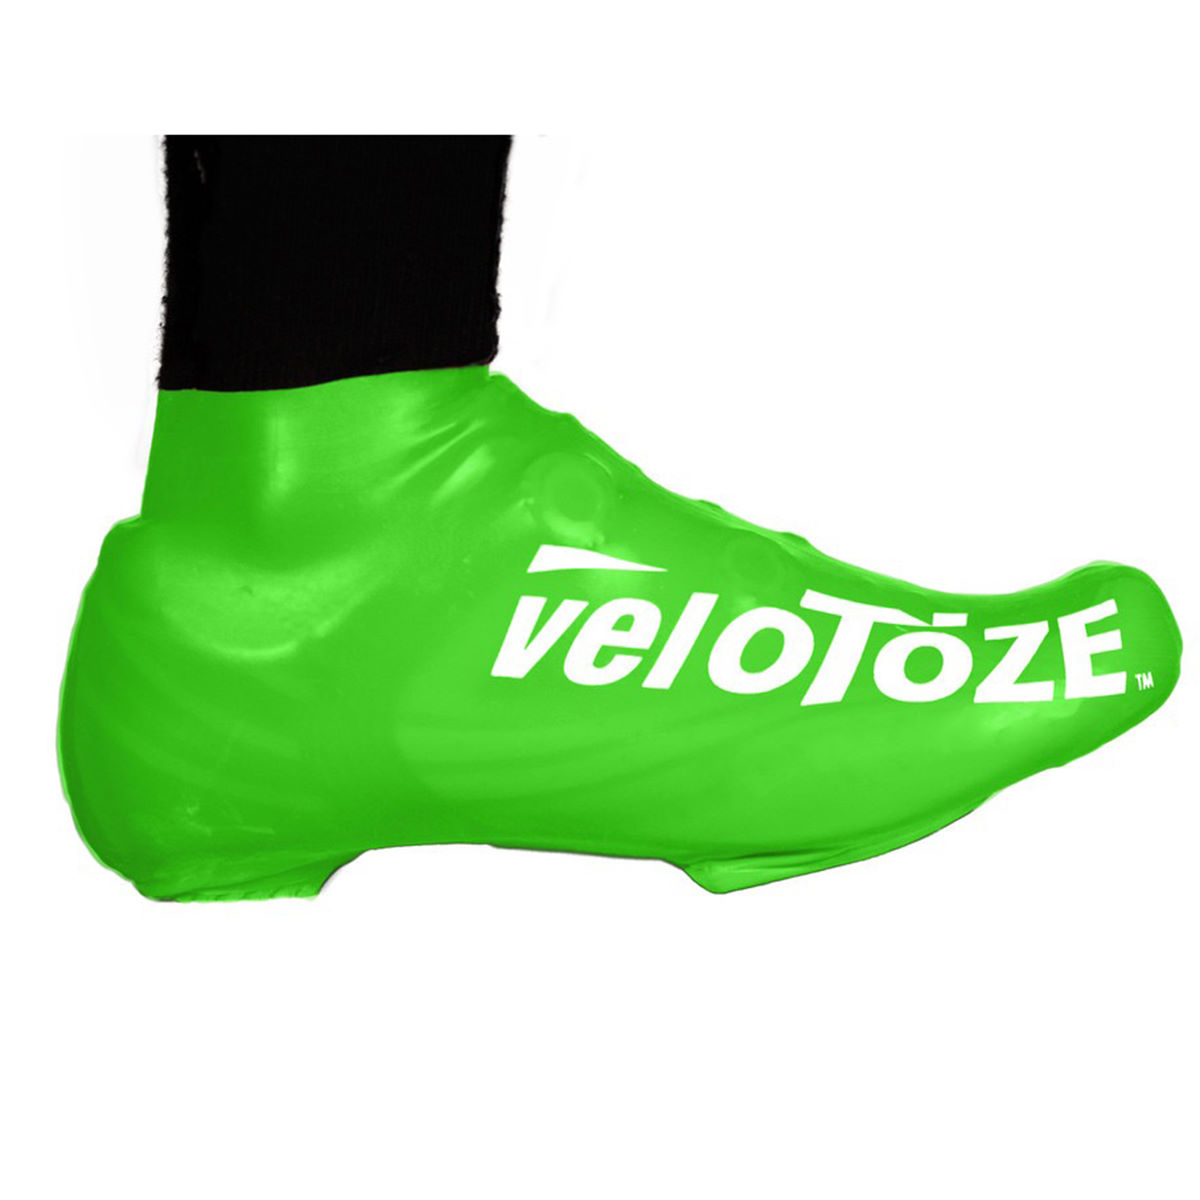 Couvre-chaussures VeloToze Short - S/M Vert Couvre-chaussures